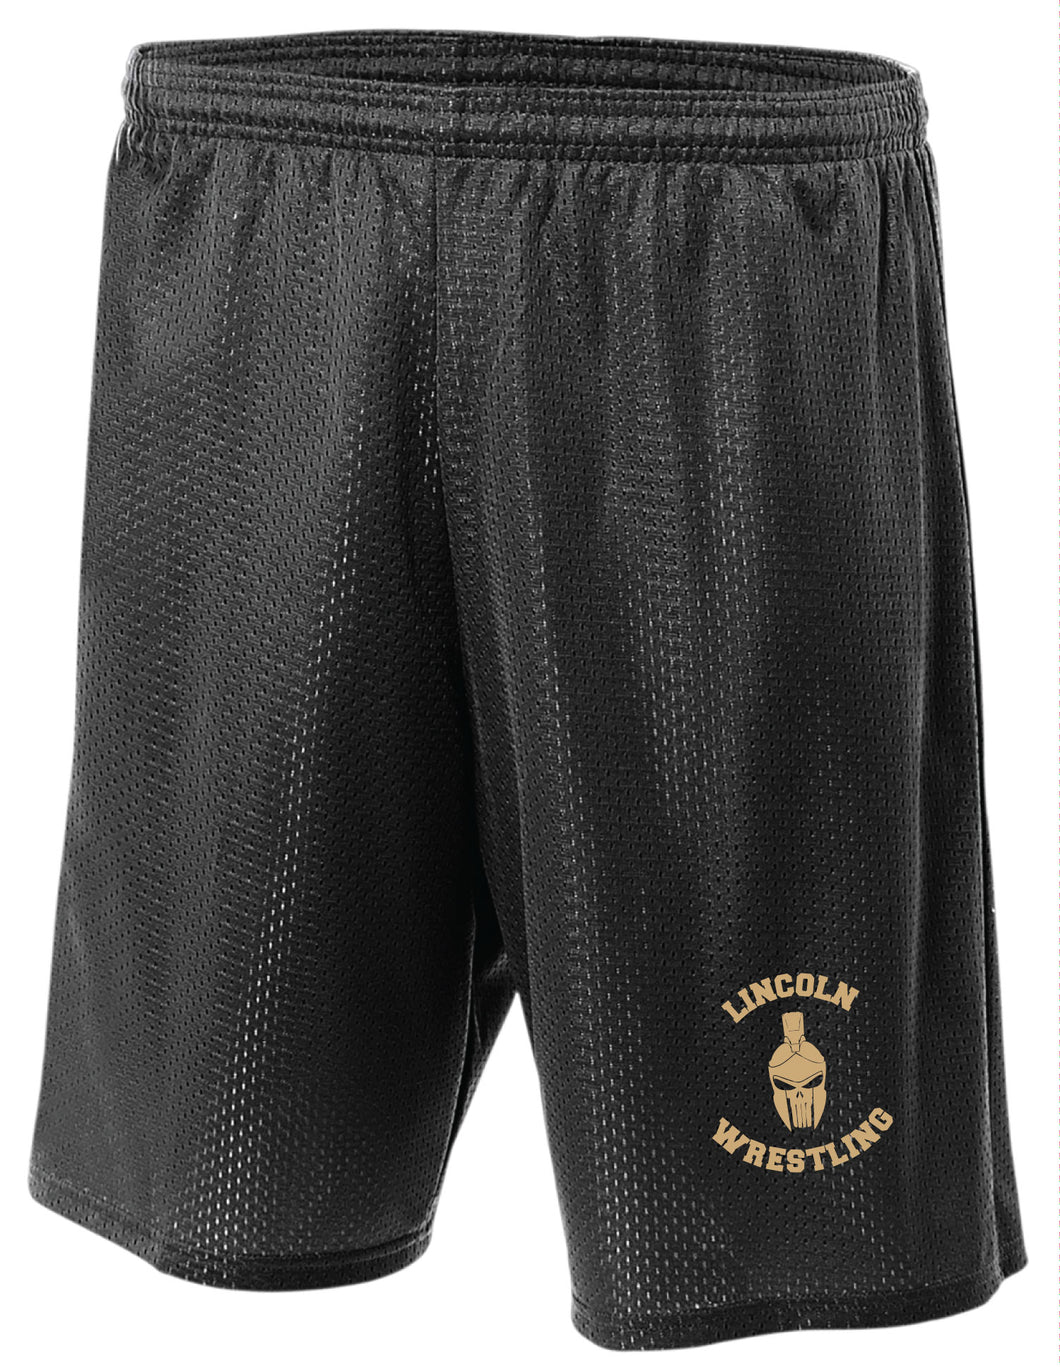 Lincoln HS Wrestling Tech Shorts